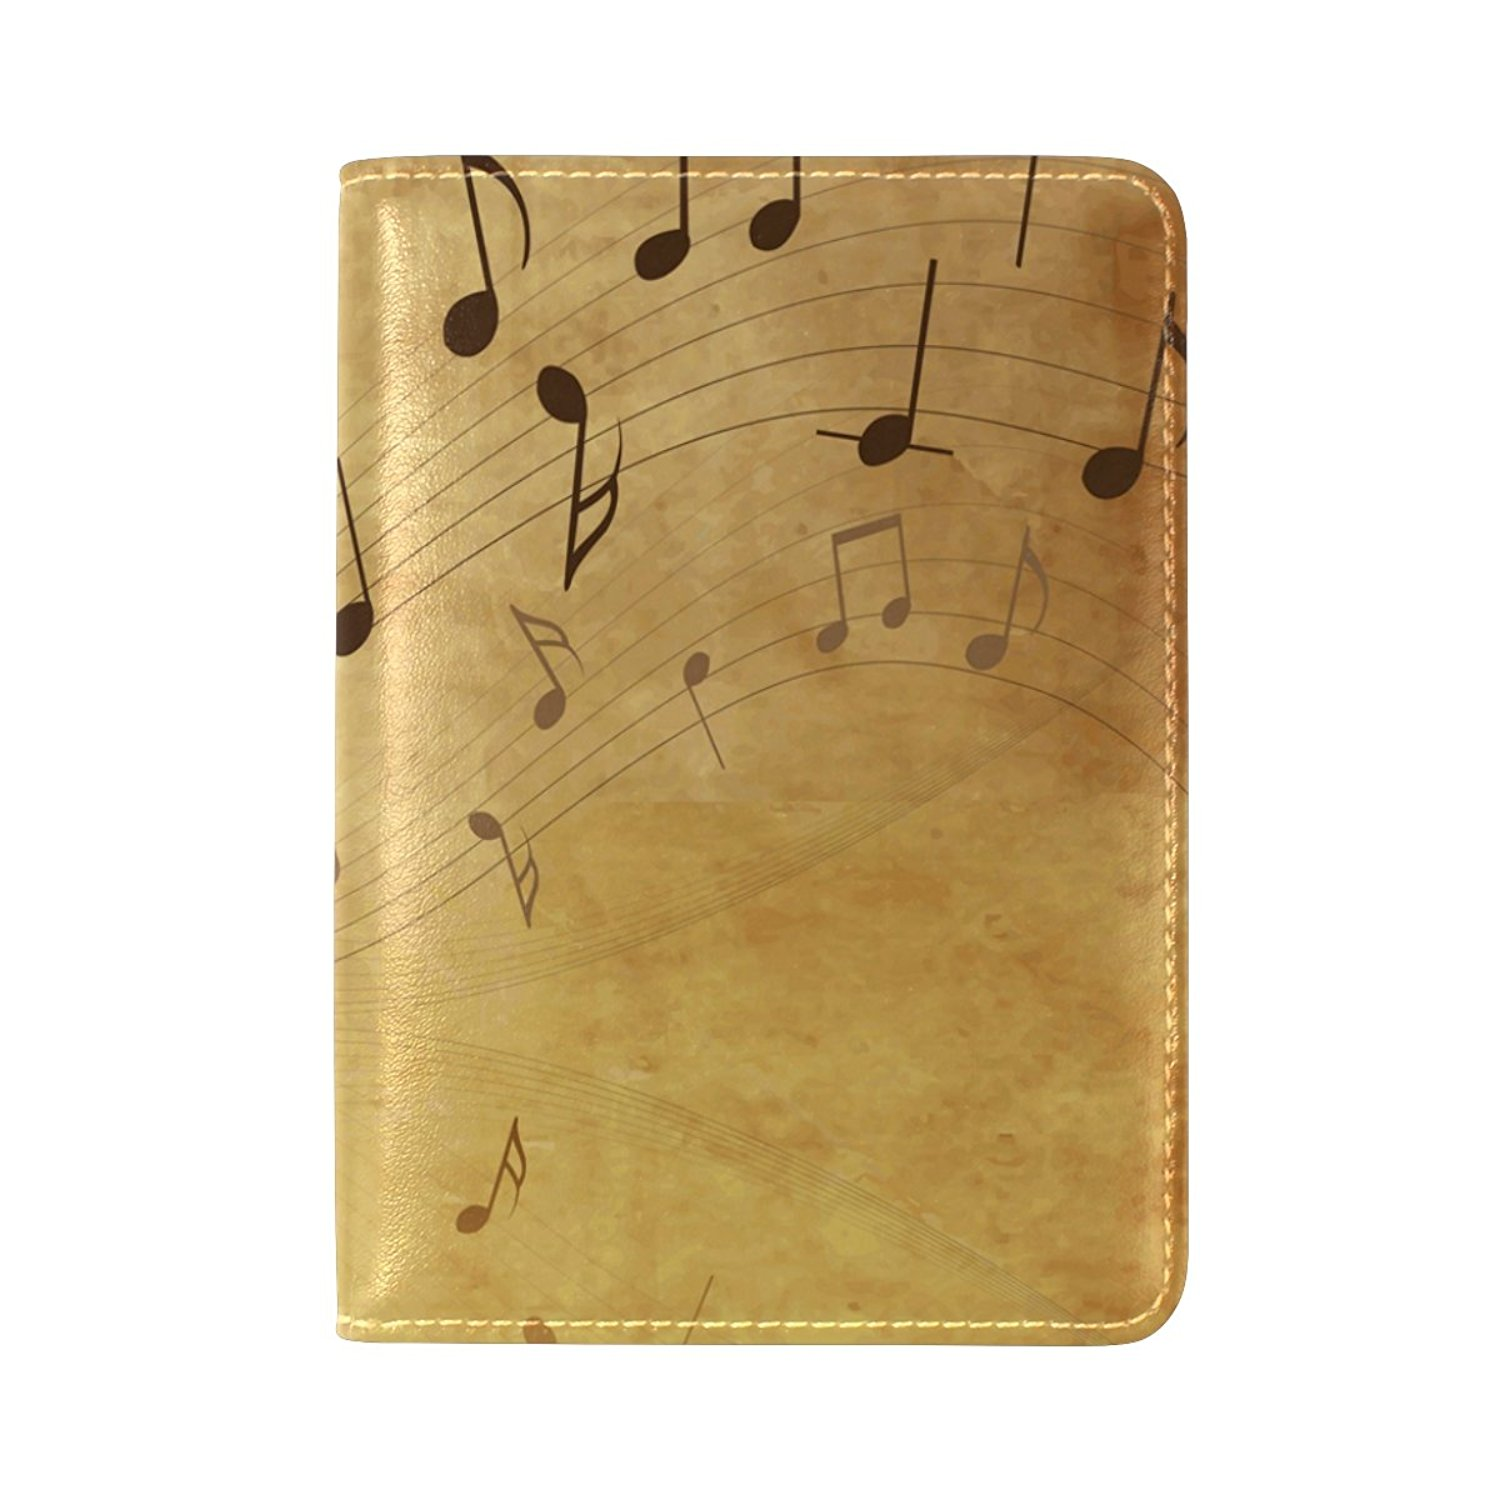 Sunlome Vintage Music Notes Pattern Leather Passport Holder Cover Travel Wallet Case